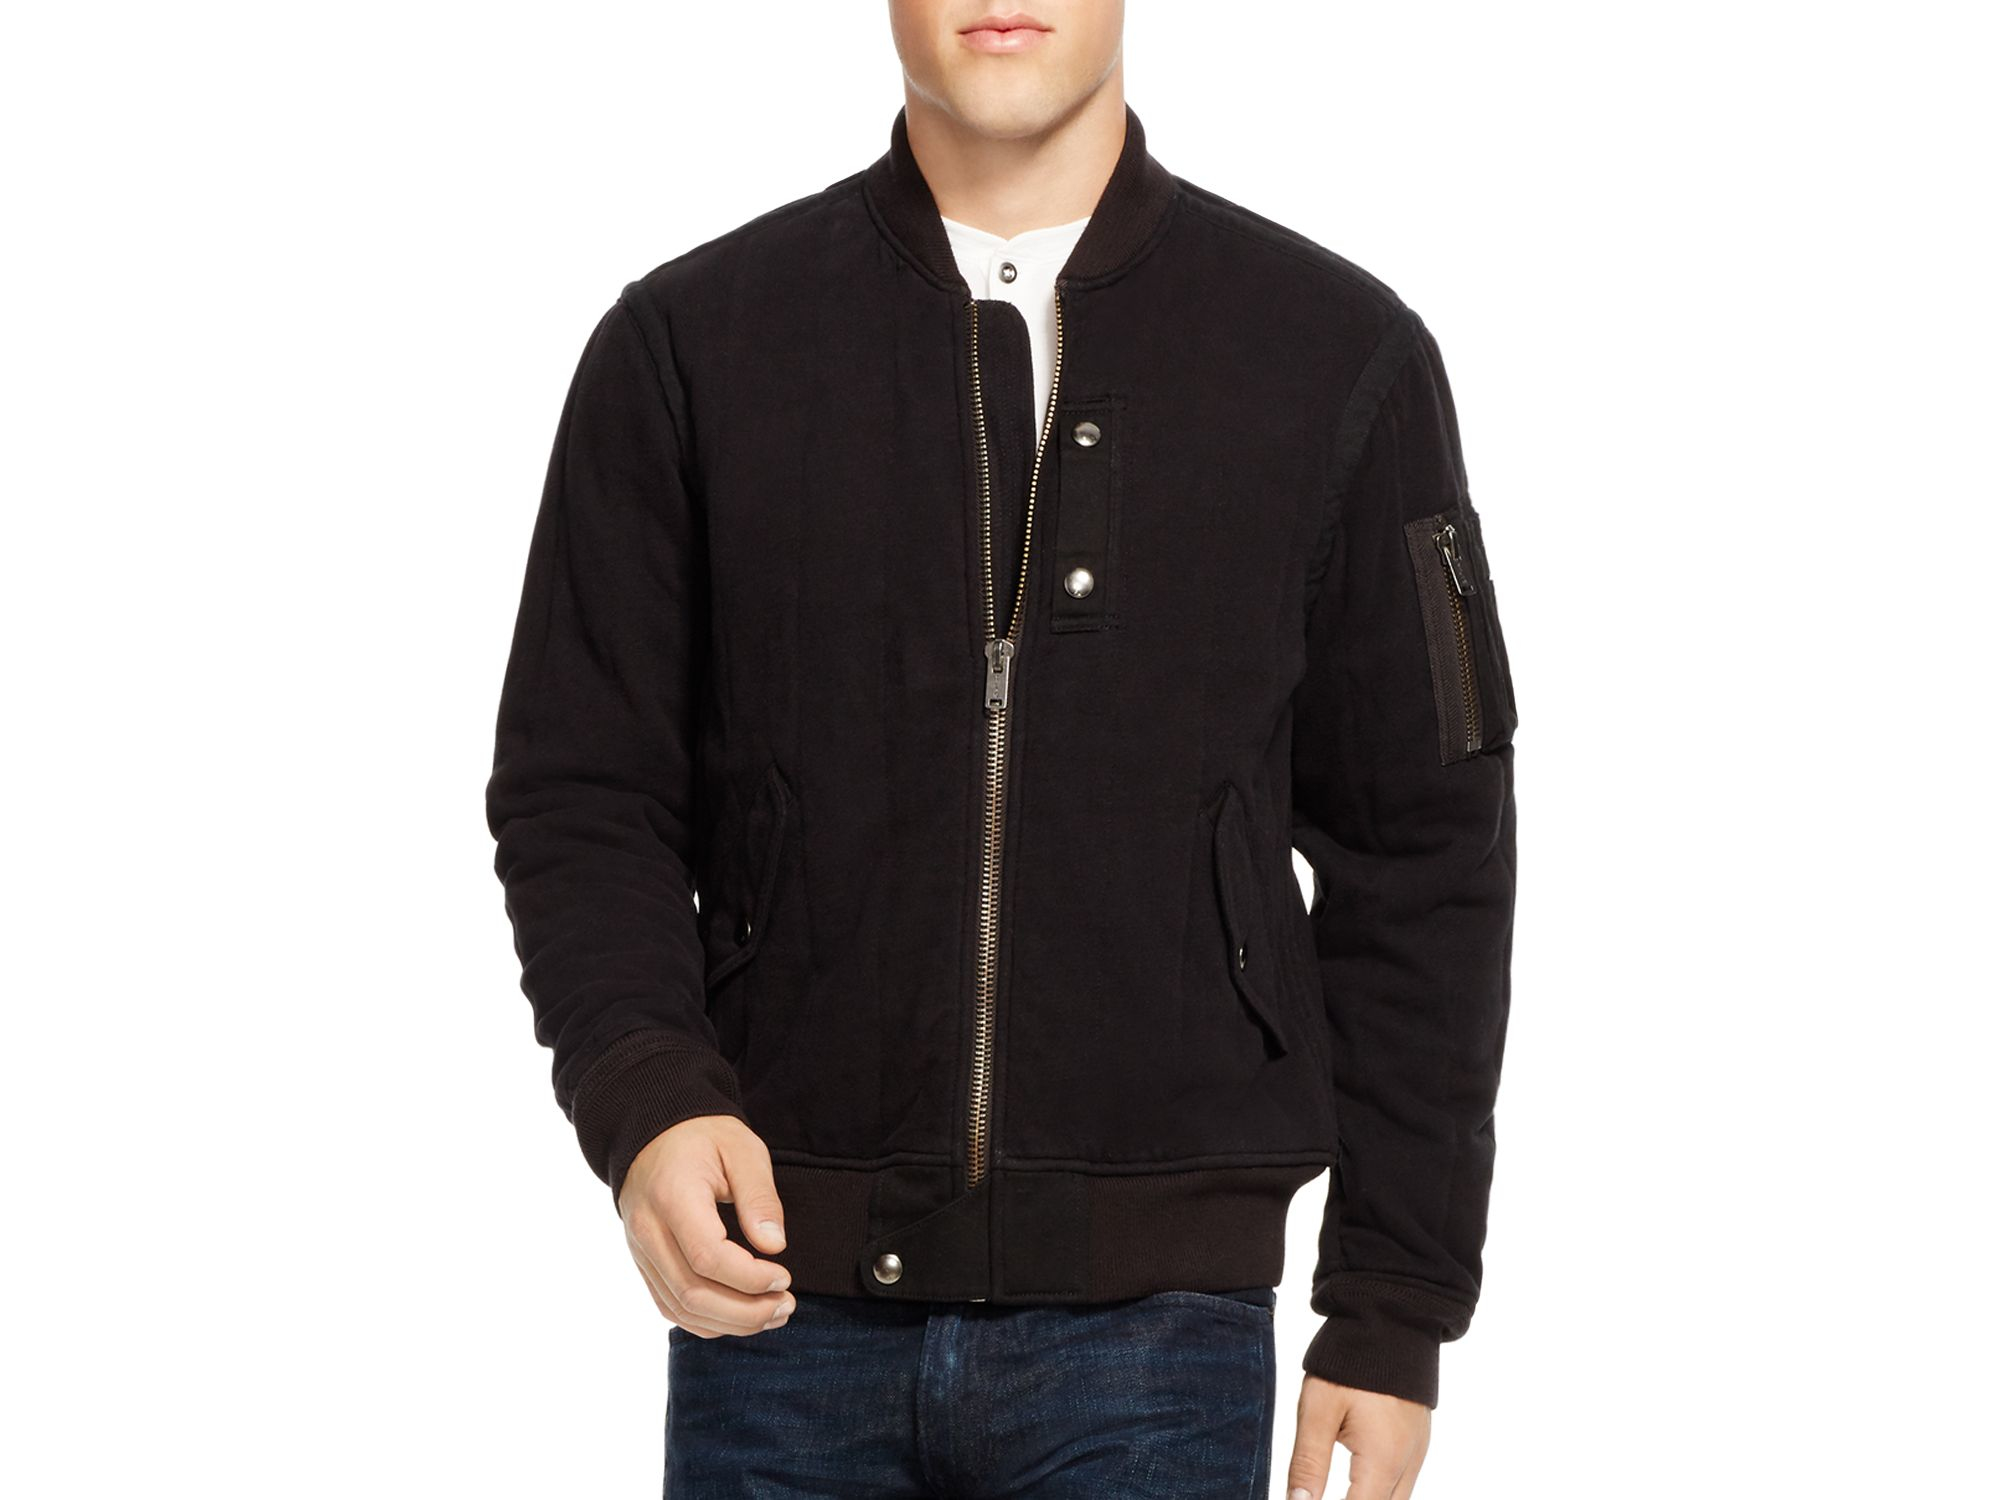 Polo ralph lauren Cotton Bomber Jacket in Black for Men | Lyst